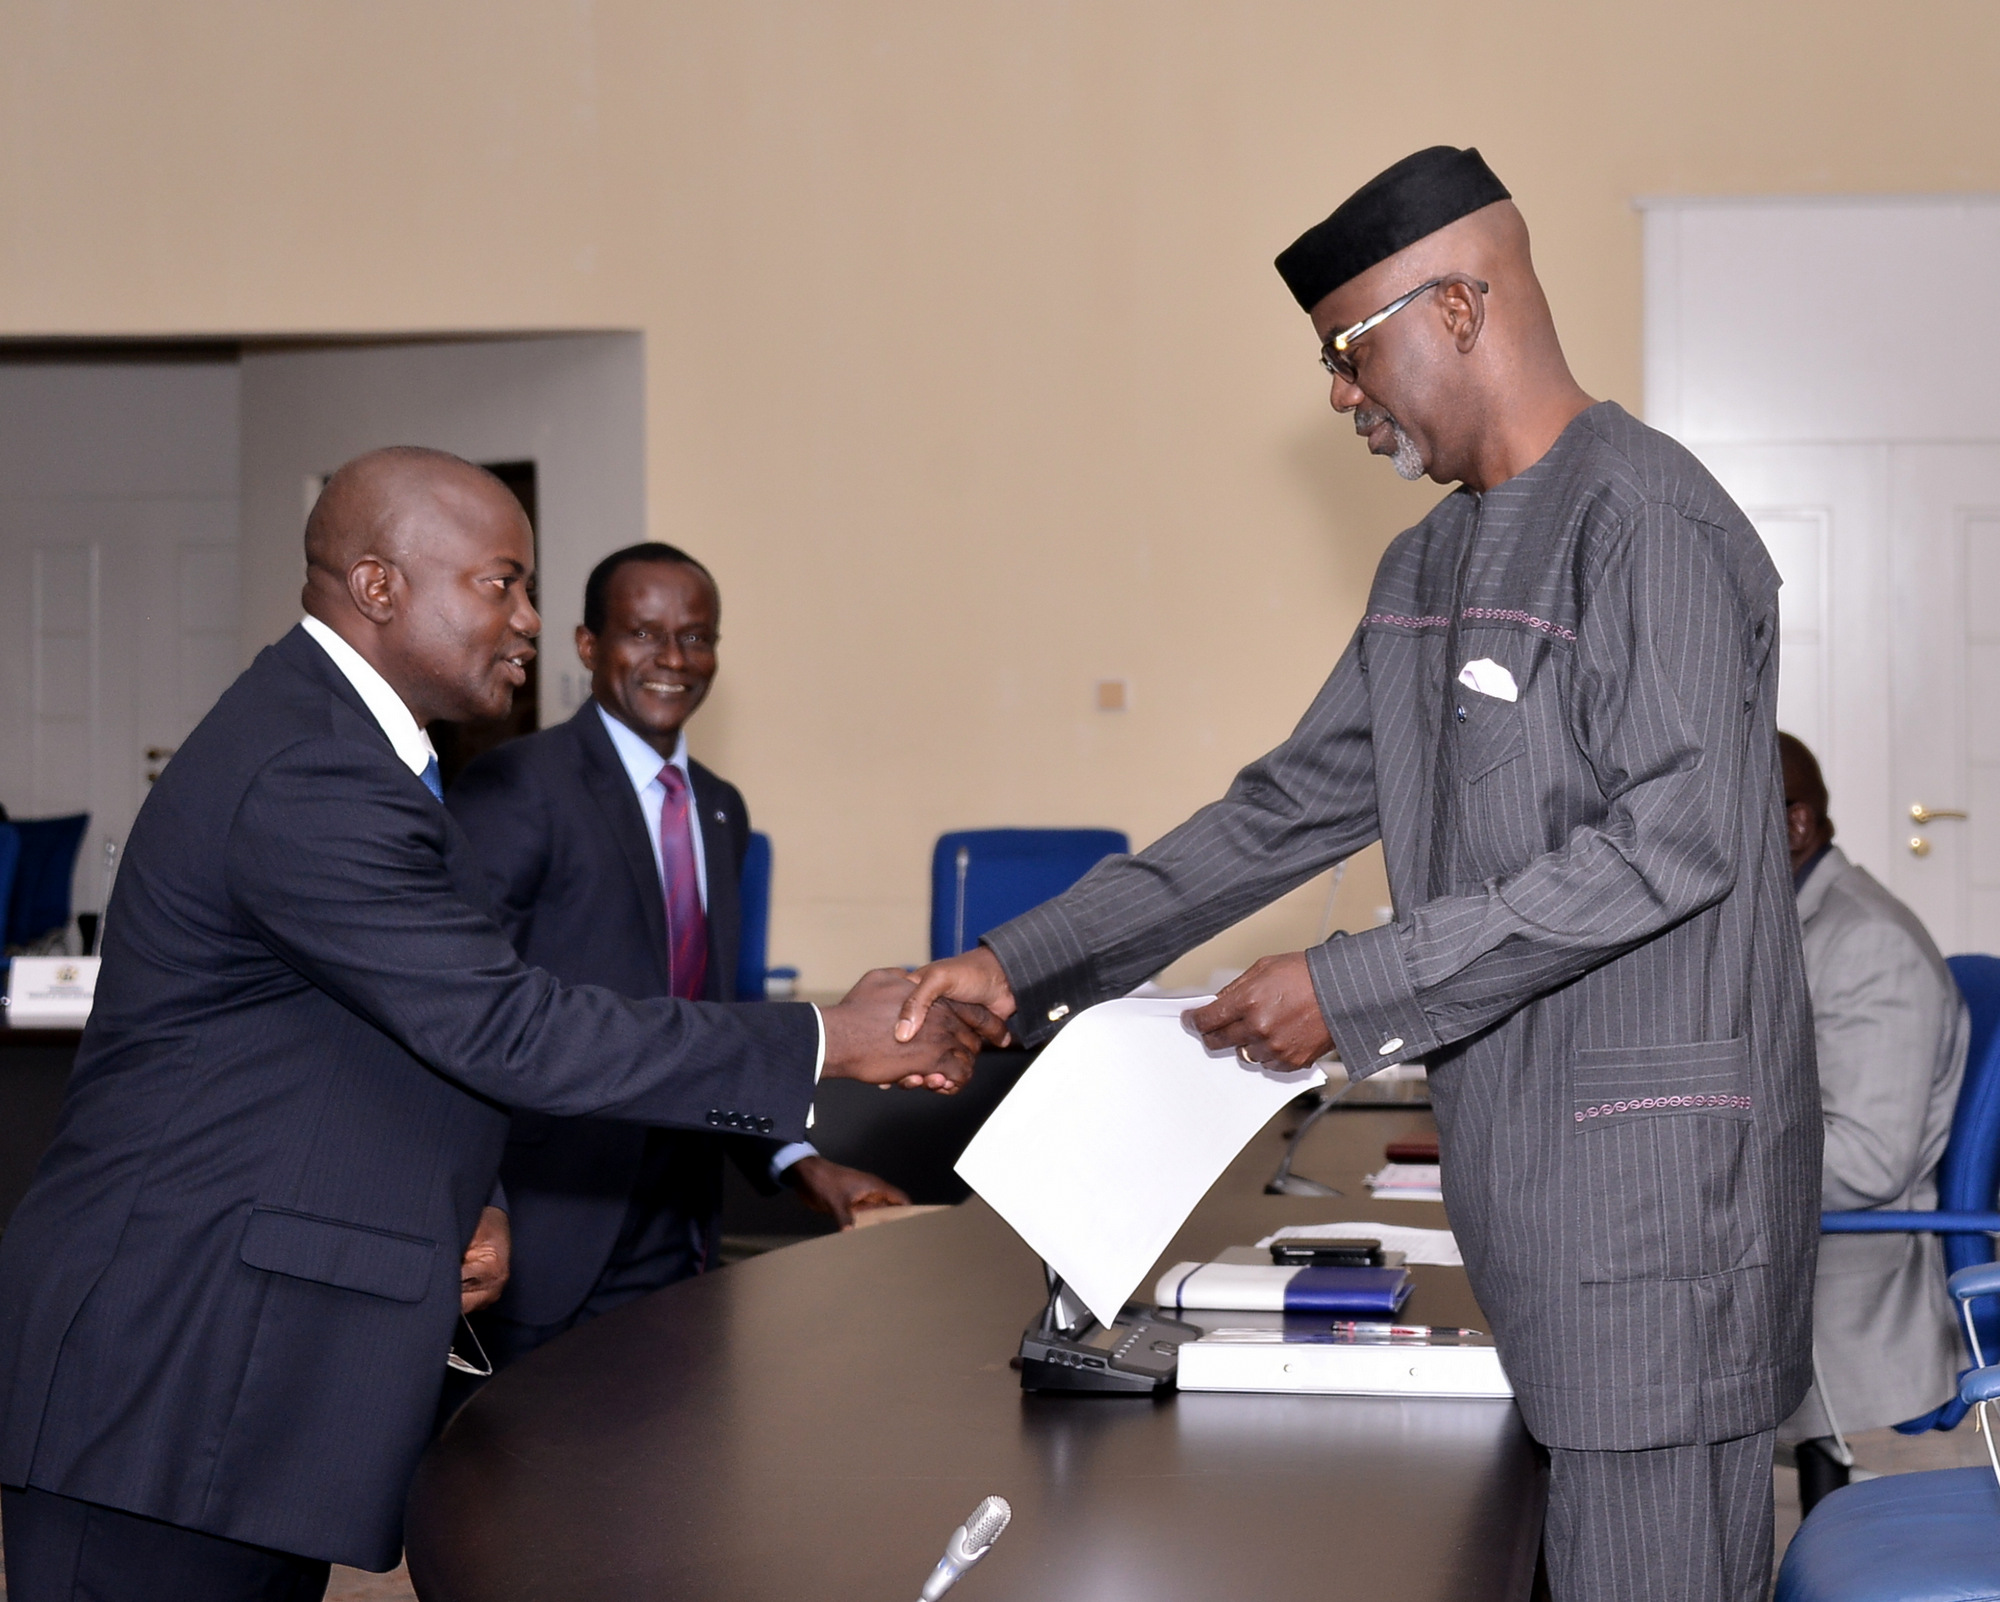 Cross River State Governor Senator Liyel Imoke congratulating the newly sworn-in Secretary to the State Government (SSG) Dr. Tom Ogar, shortly after taking oath of denunciation of cultism and that of office in Calabar, yesterday